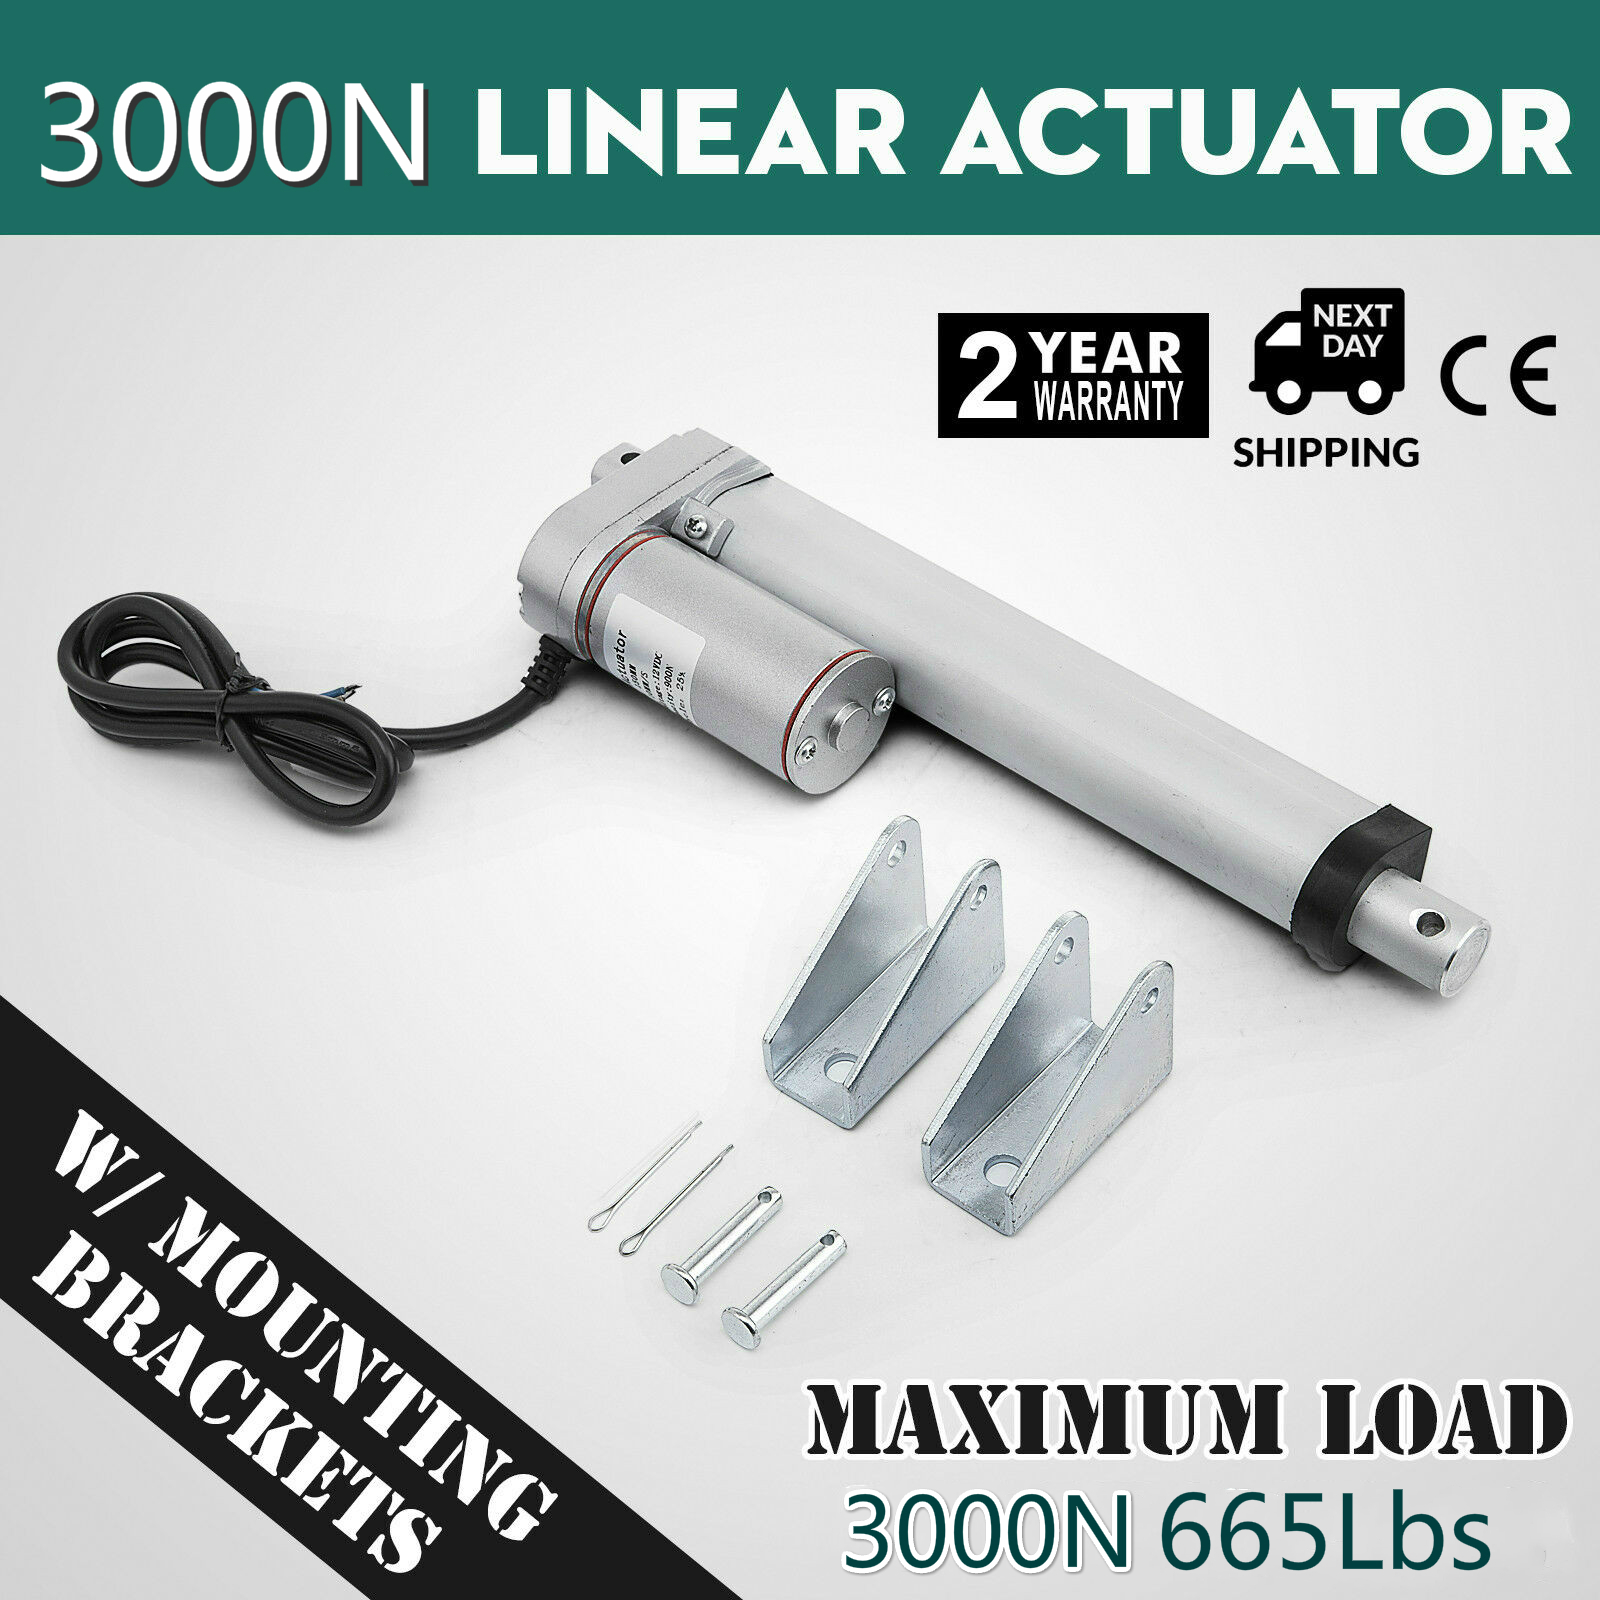 DC 12V 330lbs 10mm-200mm Lifting Distance Linear Actuator 150KG Electric Motor